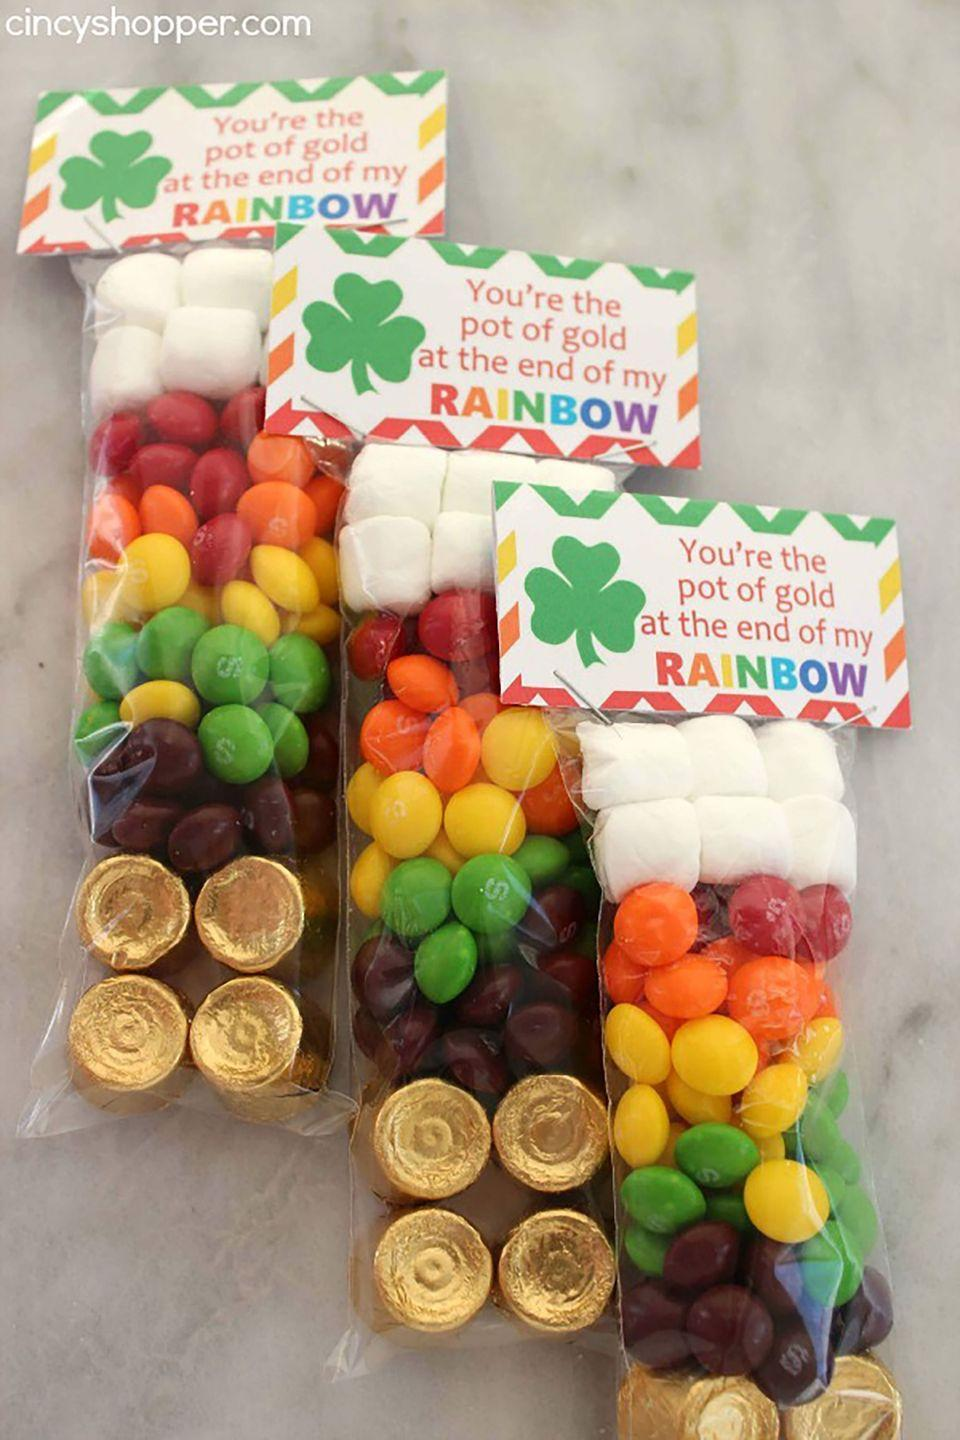 """<p>These super sweet bags make the perfect <a href=""""https://www.womansday.com/food-recipes/food-drinks/g1768/st-patricks-day-recipes/"""" rel=""""nofollow noopener"""" target=""""_blank"""" data-ylk=""""slk:party favor"""" class=""""link rapid-noclick-resp"""">party favor</a> for a school celebration. The labels are printable, so the only thing you have to worry about is getting the plastic bags and candy.</p><p><em>Get the tutorial at <a href=""""http://cincyshopper.com/st-patricks-day-rainbow-skittles-treat-bags/"""" rel=""""nofollow noopener"""" target=""""_blank"""" data-ylk=""""slk:Cincy Shopper"""" class=""""link rapid-noclick-resp"""">Cincy Shopper</a>.</em> </p>"""